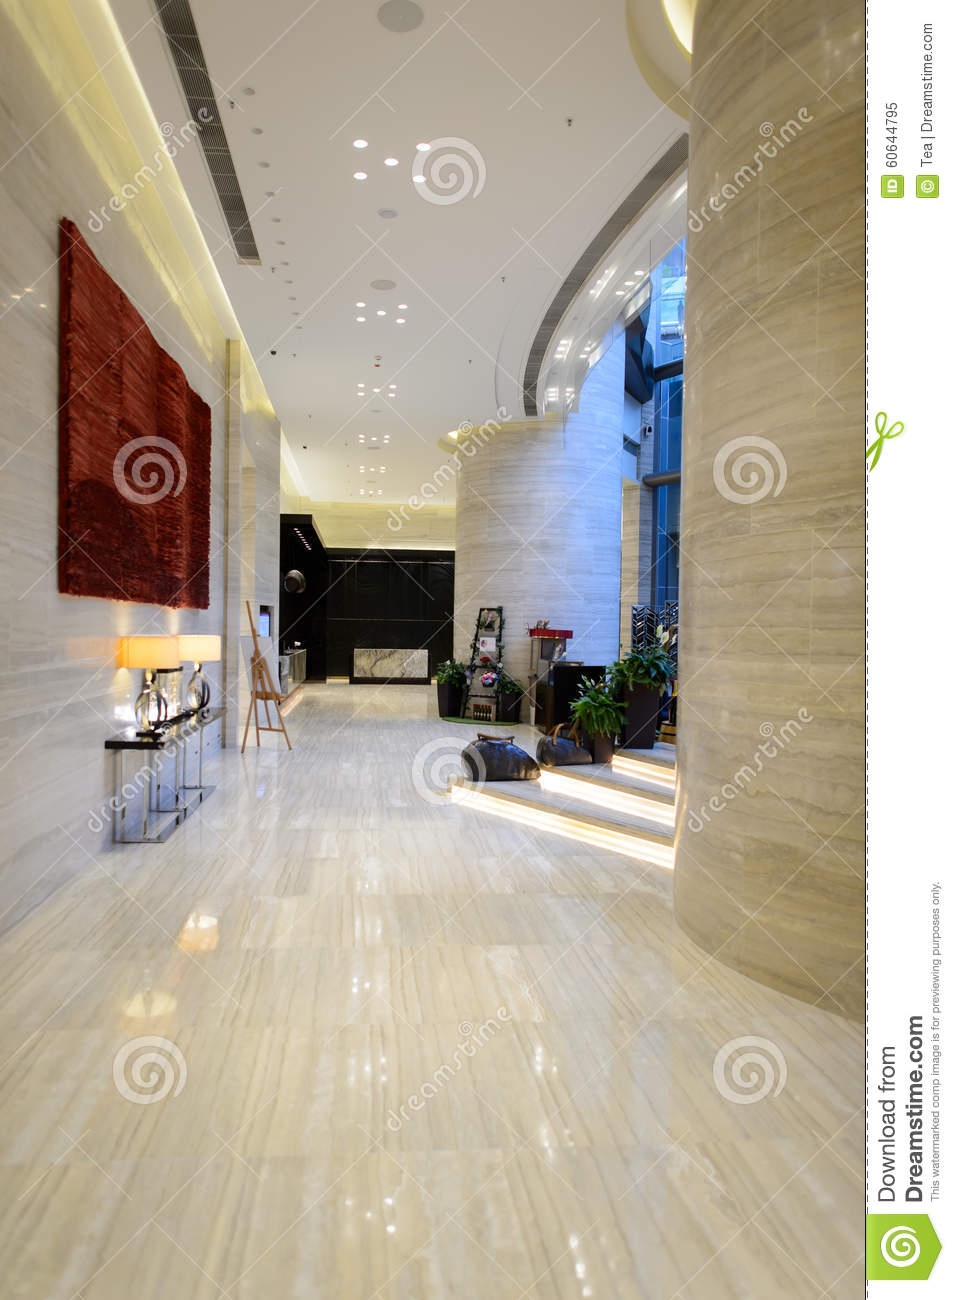 marketing plan for crown plaza hotels resorts essay Free essay: intercontinental hotels and resort group, have repositioned the  brand in the market, part of their marketing strategy, they asked.